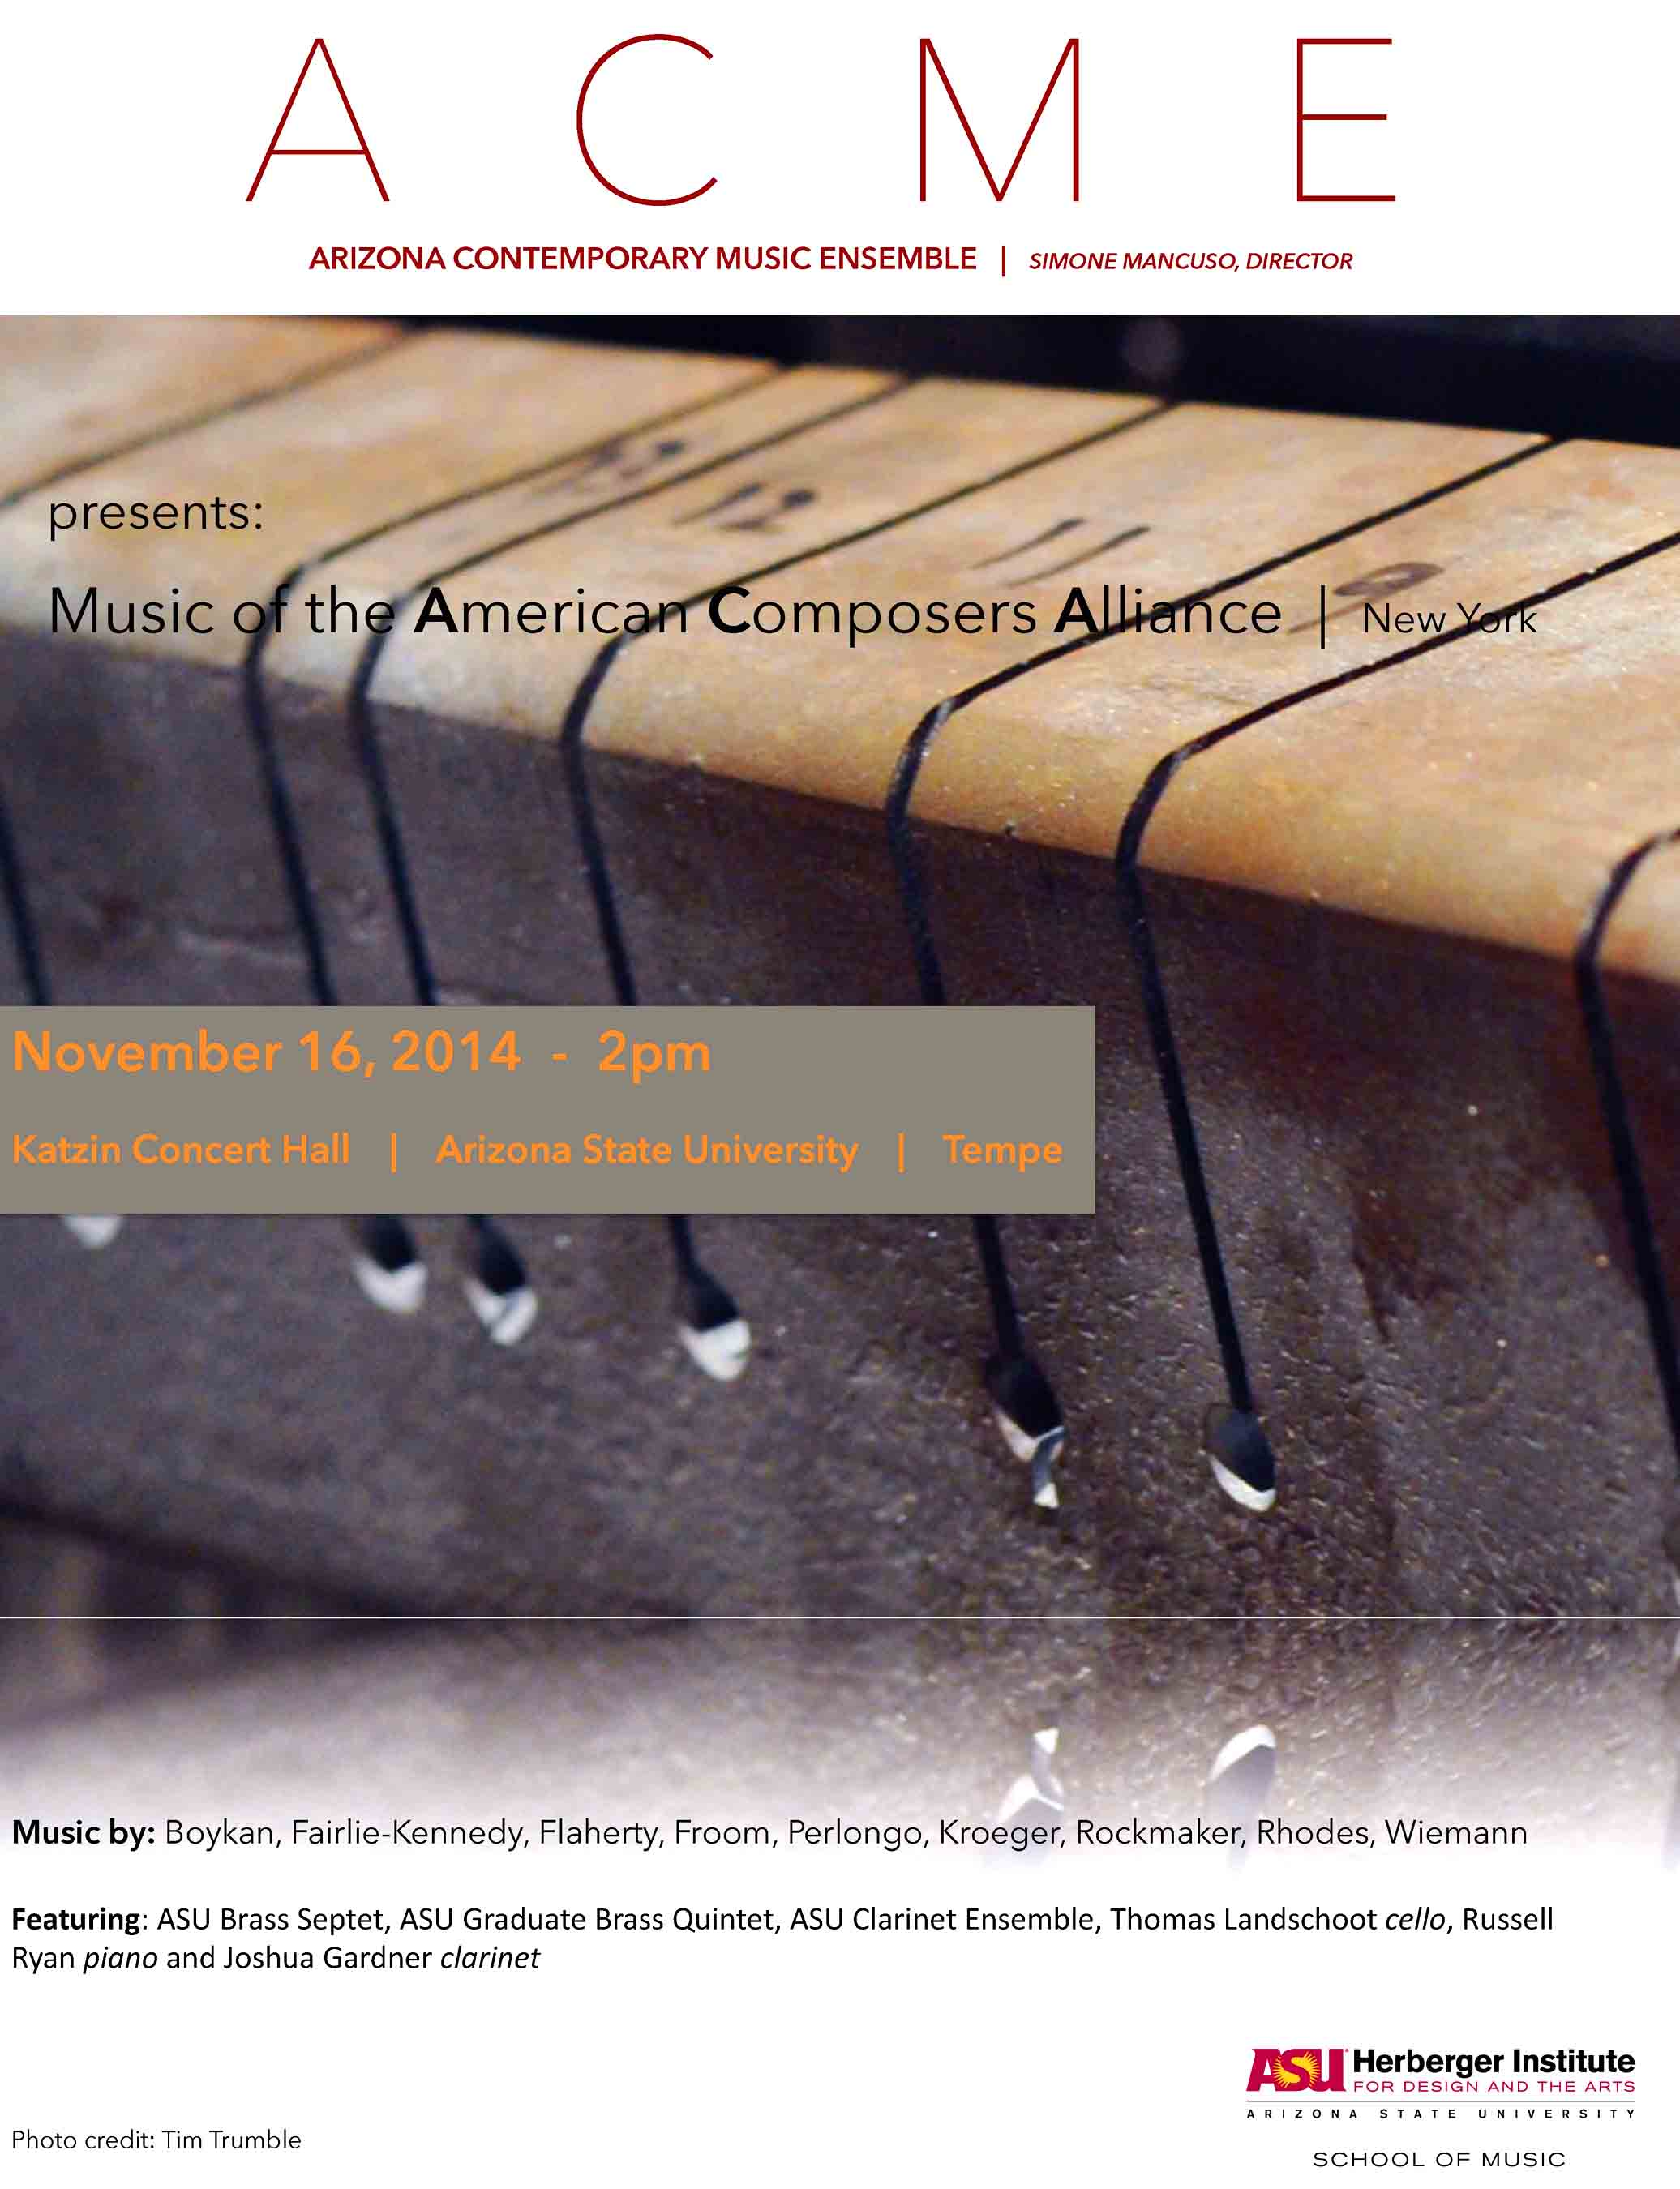 Arizona Contemporary Music Ensemble (ACME) performs music by